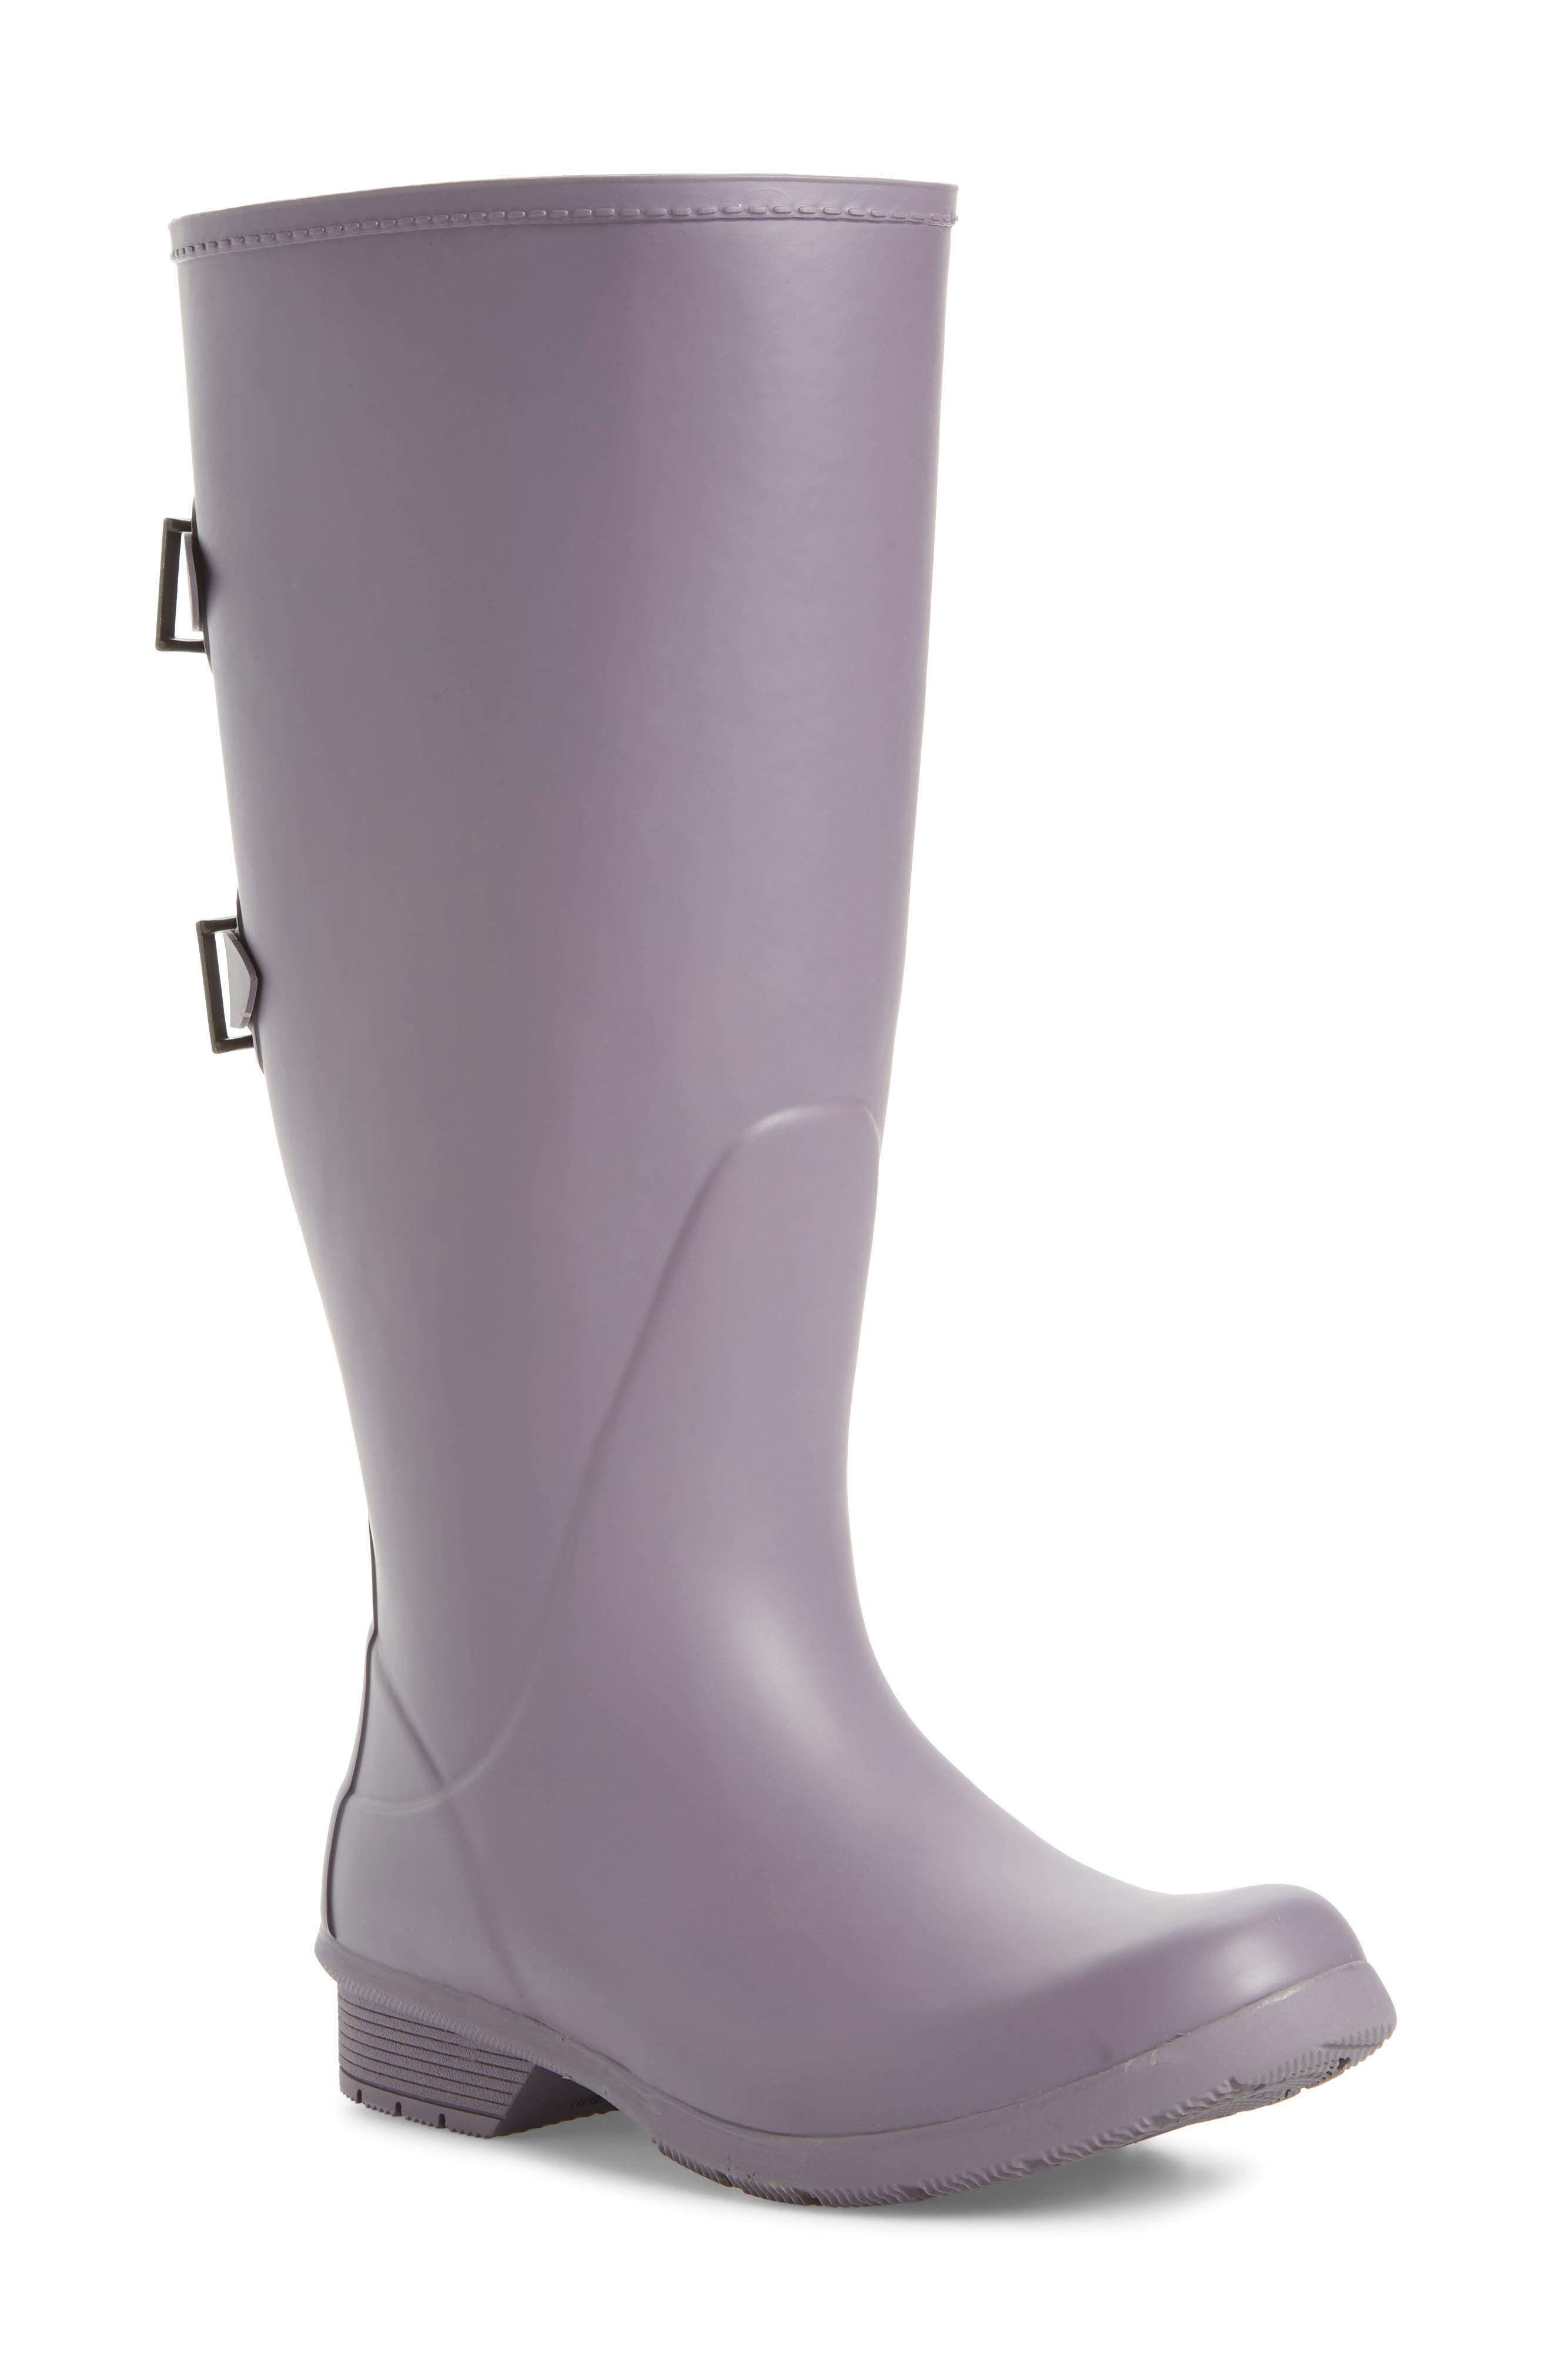 Image of Chooka Versa Prima Tall Rain Boot